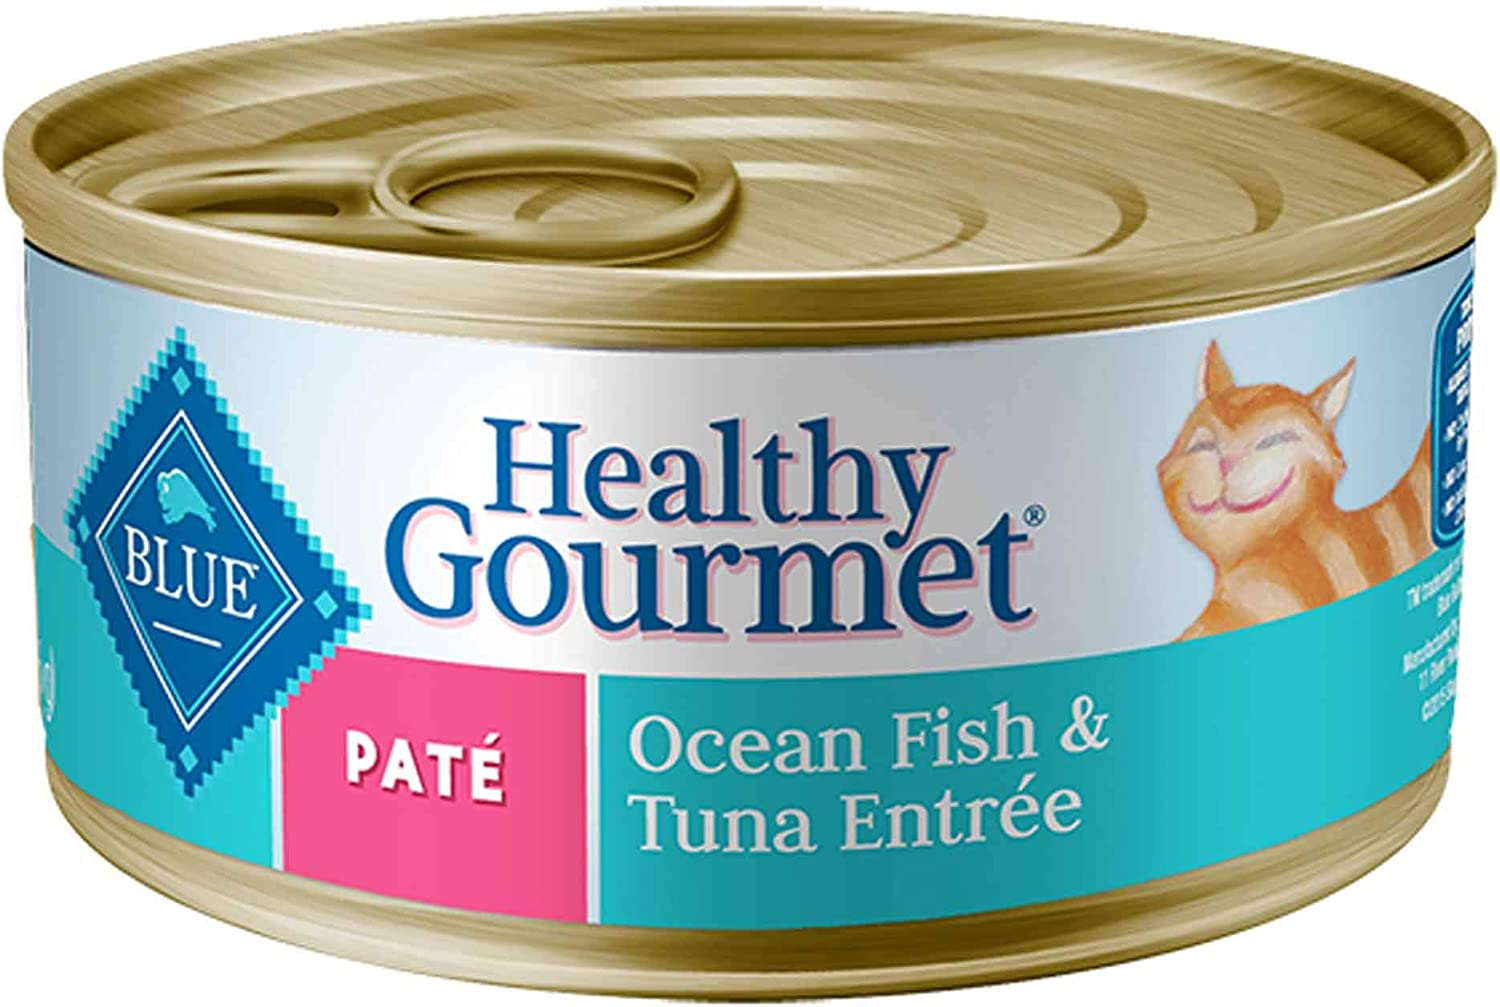 Blue Buffalo Adult Pate - Ocean Fish And Tuna Entree - 24 X 5.5 Oz